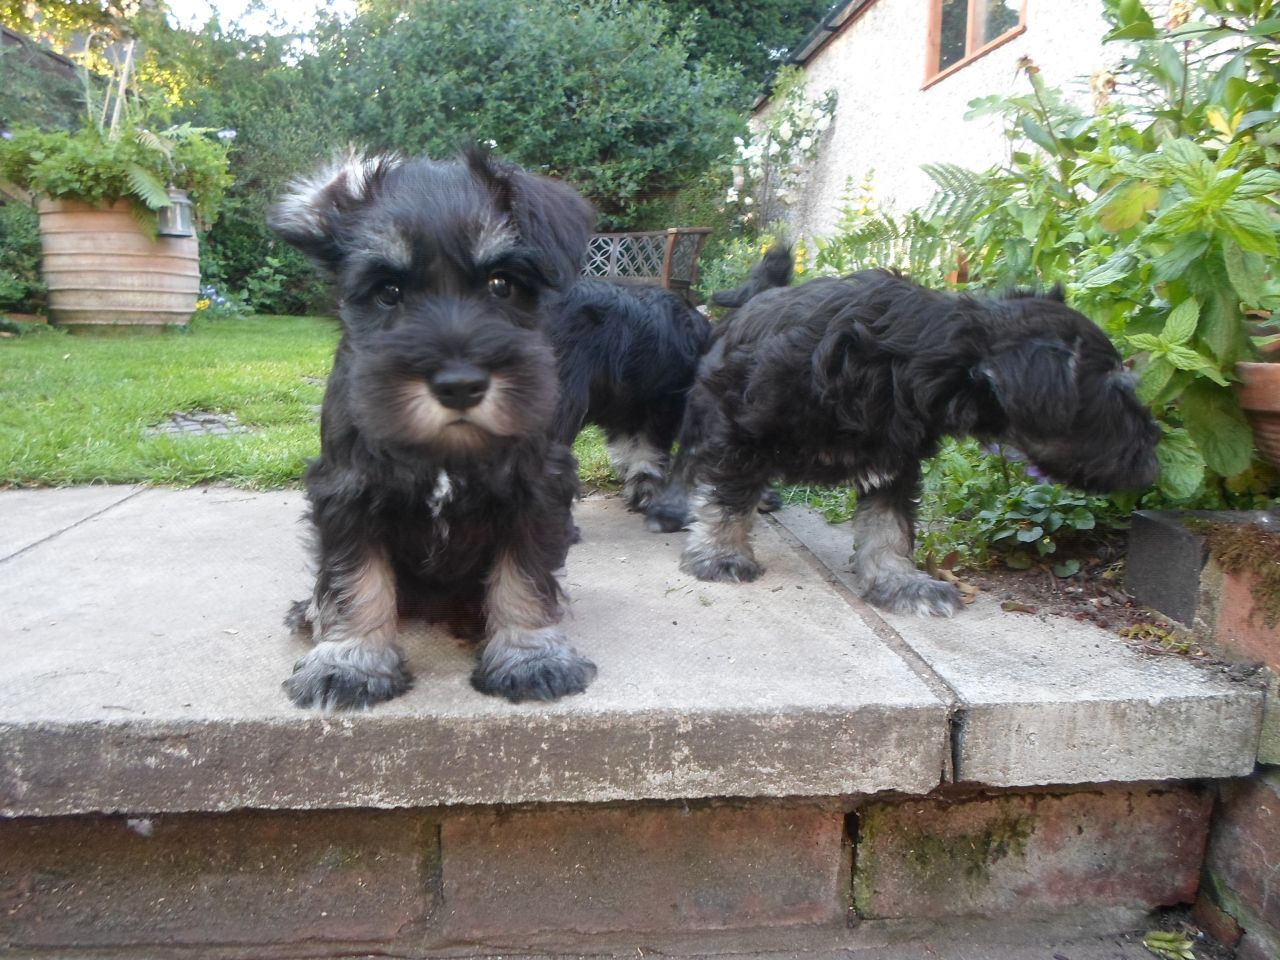 The Miniature Schnauzer Is A Good Dog For Apartment Life And Can Be Calm Indoors So Long Miniature Schnauzer Miniature Schnauzer Puppies Mini Schnauzer Puppies